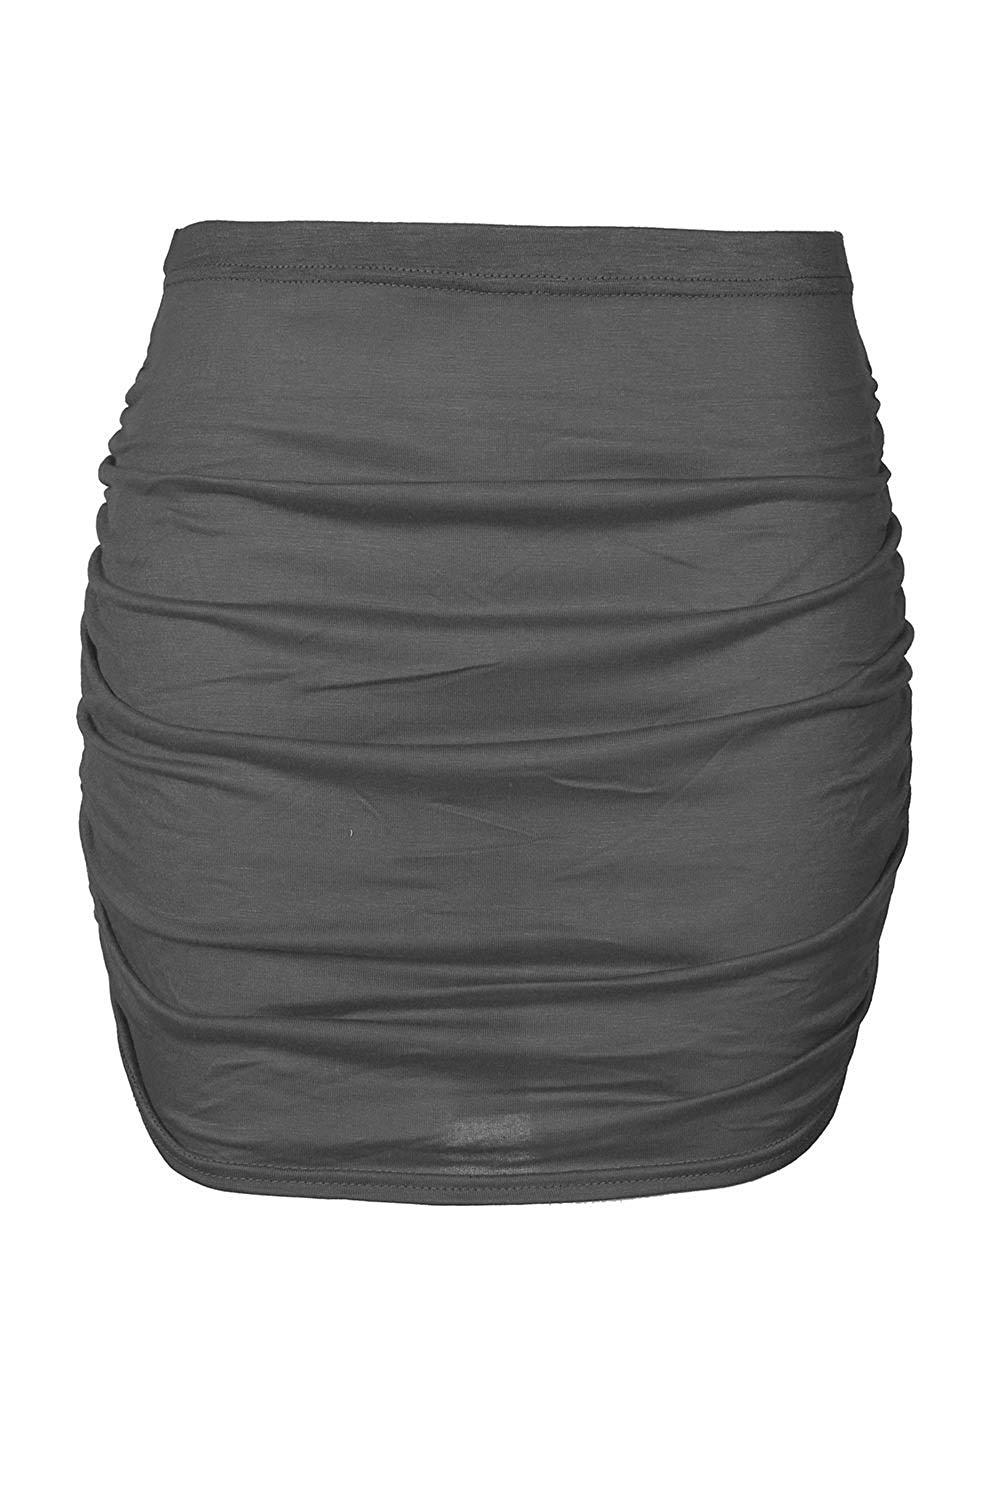 Oops Outlet Women's Mini Skirt Plain Elasticated Stretchy Side Ruched Bodycon